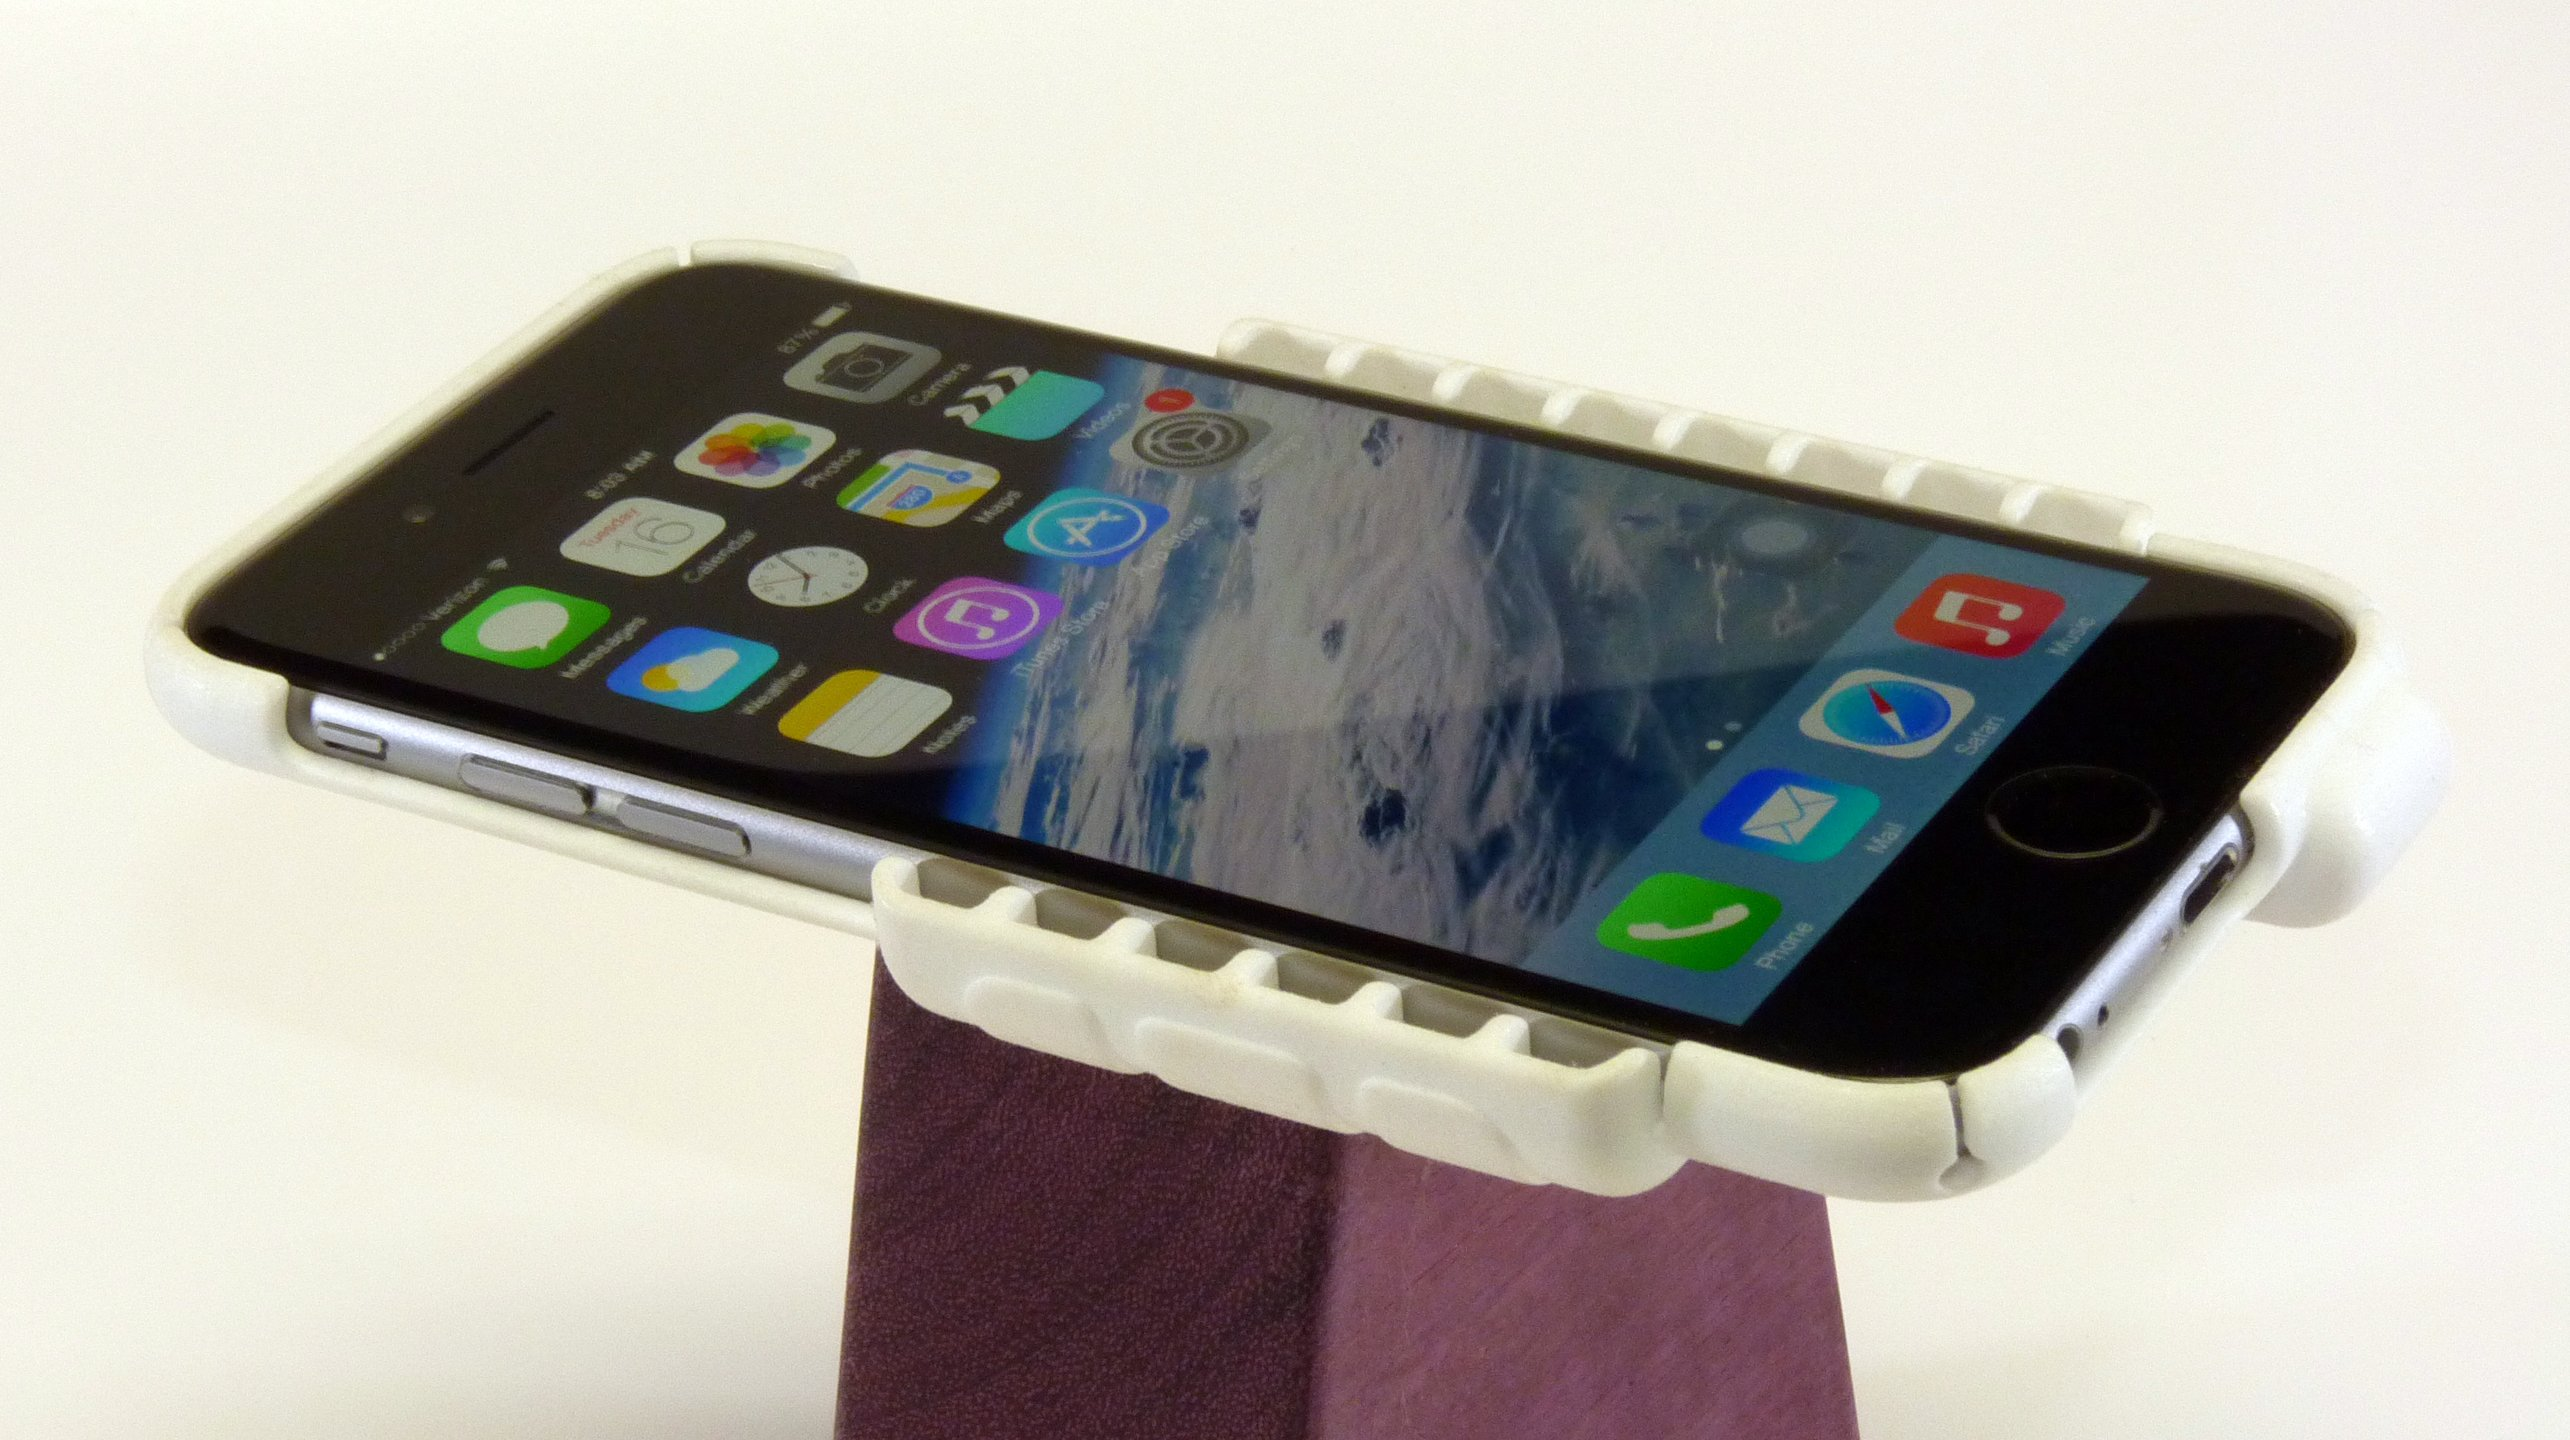 Amplifying Christmas tunes with this 3D printed iPhone case